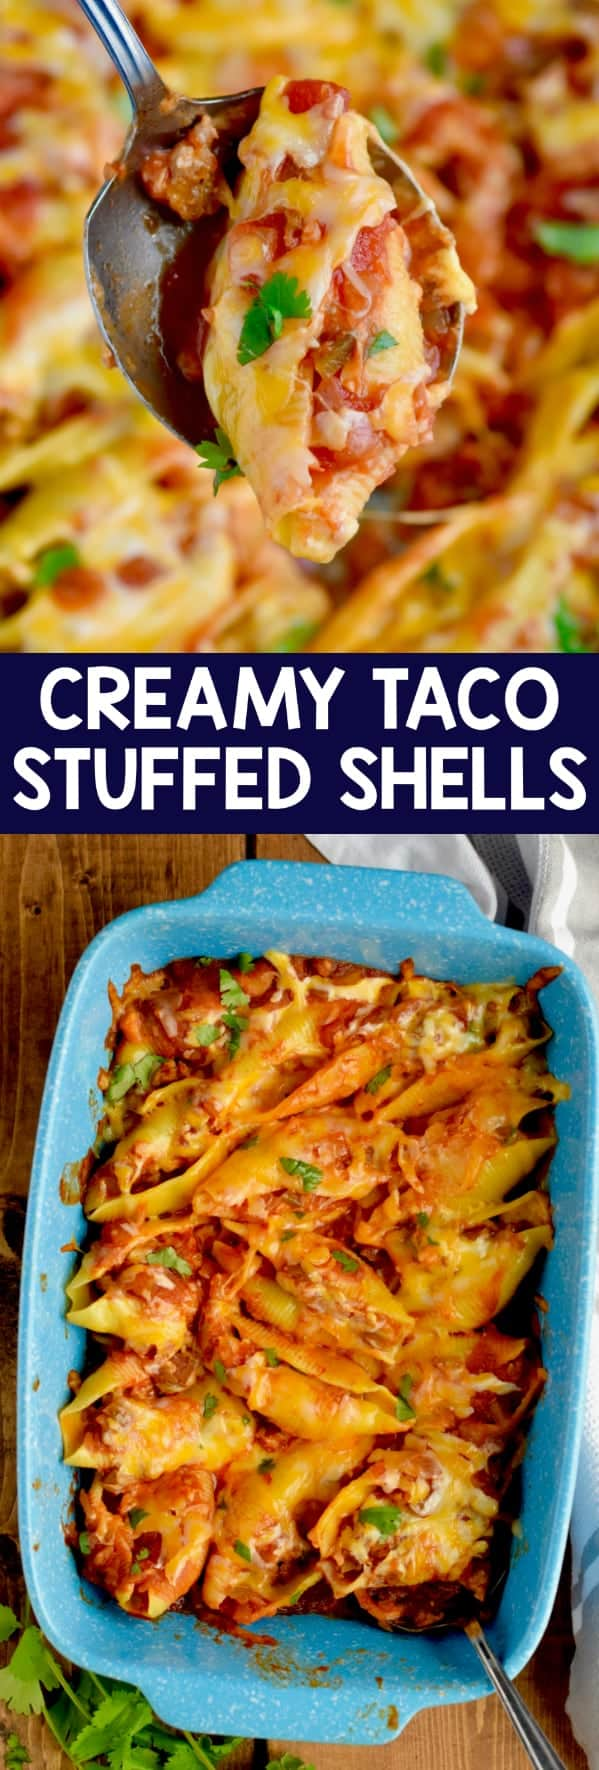 These Creamy Taco Stuffed Shells make for an easy but absolutely delicious dinner!  This is a taco twist on your favorite stuffed shells recipe!  It is a great weeknight dinner.